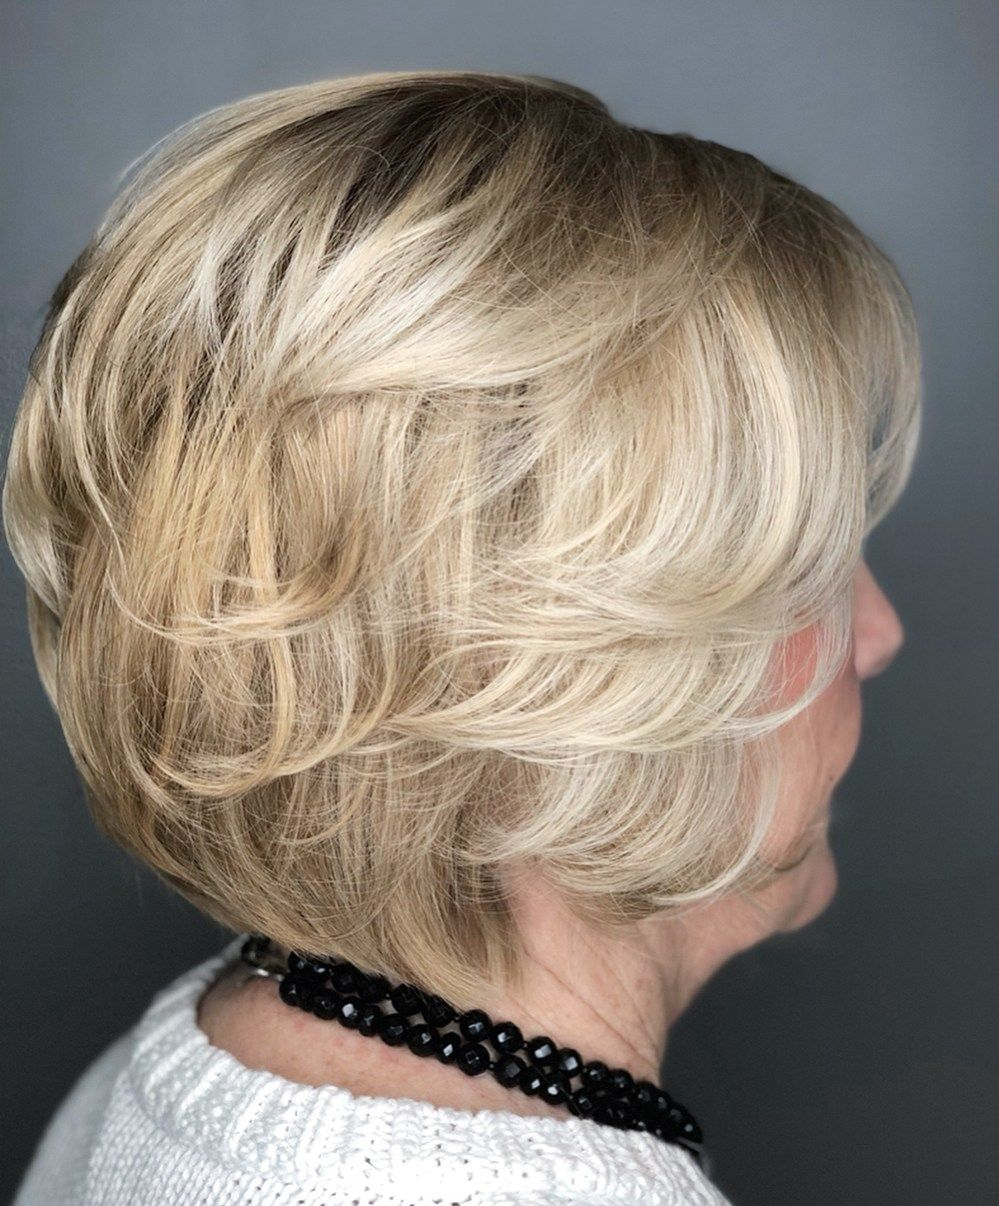 haircuts hairstyles layered bob blonde grey pixie thick bangs cuts feathered adviser layers fashionterest cut ans peinados hadviser coupes courtes